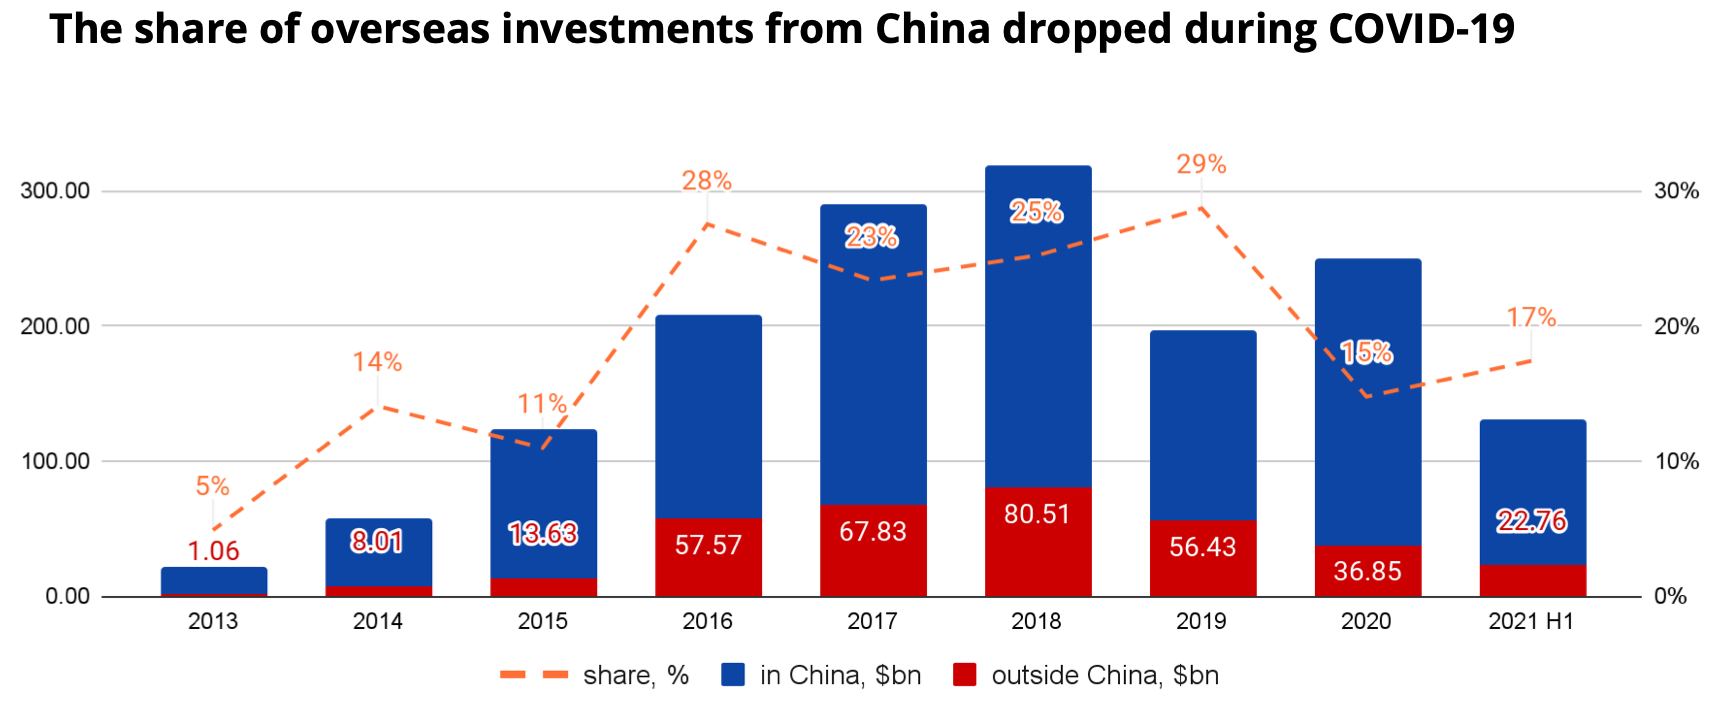 Dynamics of Chinese investments. $ bn. Source: Crunchbase, ITjuzi